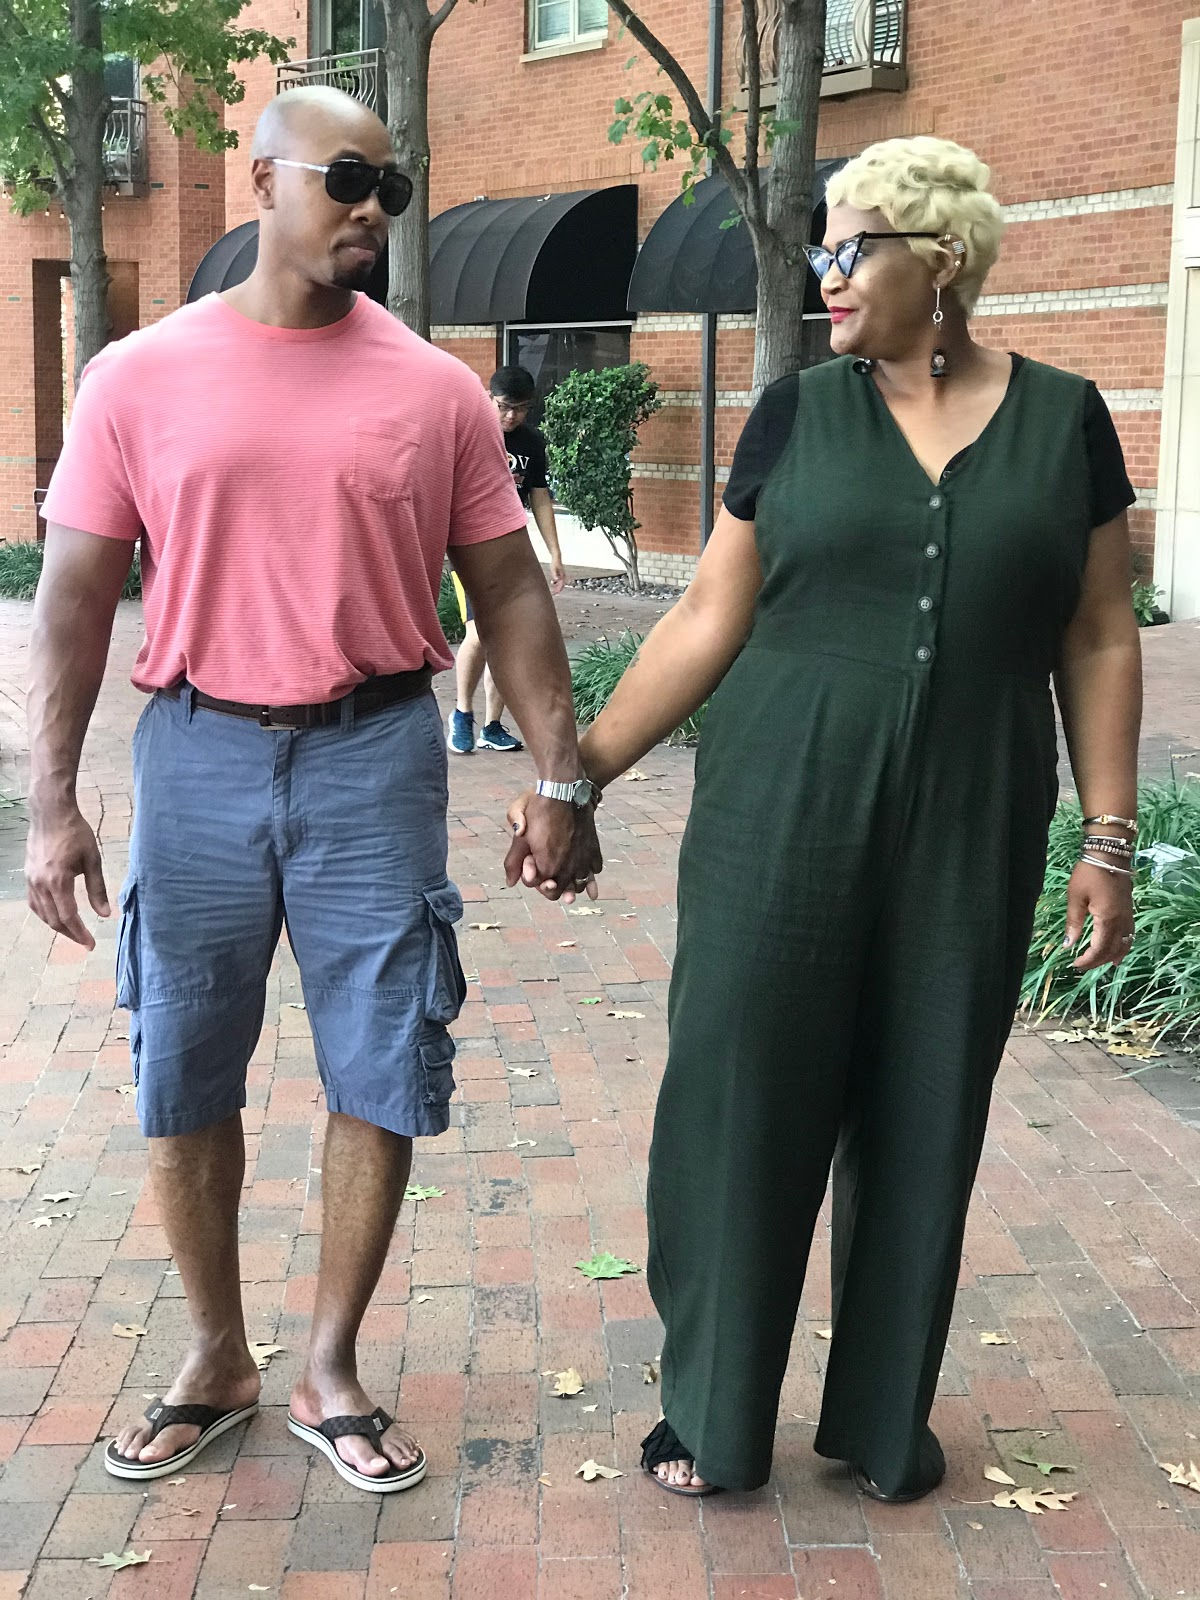 Tangie Bell and husband Richard bell walking in the park. Sharing The Weird Things No One Told Me About Being Forty-Something: My Crazy Tips!